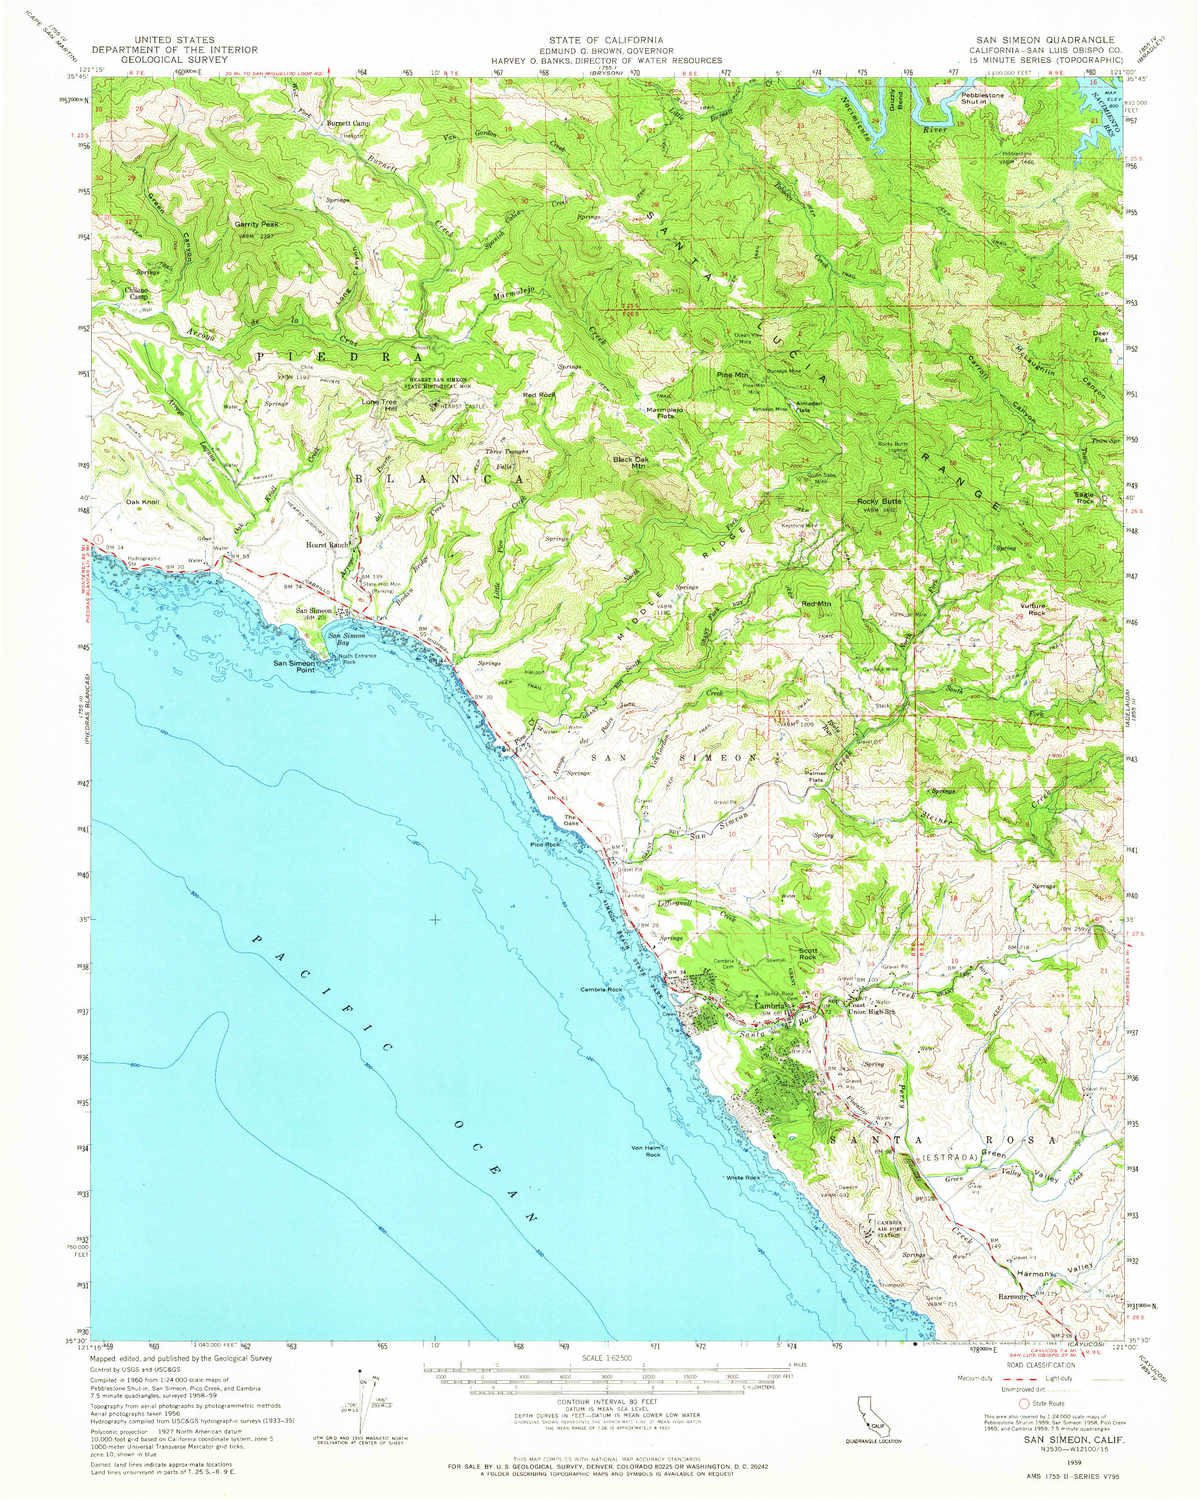 Amazon.com: YellowMaps San Simeon CA topo map, 1:62500 Scale ... on south el monte map, pismo beach map, moonstone beach map, yorba linda map, morro bay state park map, hearst castle map, pico rivera map, santa cruz map, van nuys map, hearst mansion map, casmalia map, carmel bay map, santa susana pass map, cayucos map, gorda map, lake san antonio map, yosemite national park map, mission san luis obispo map, turlock map,